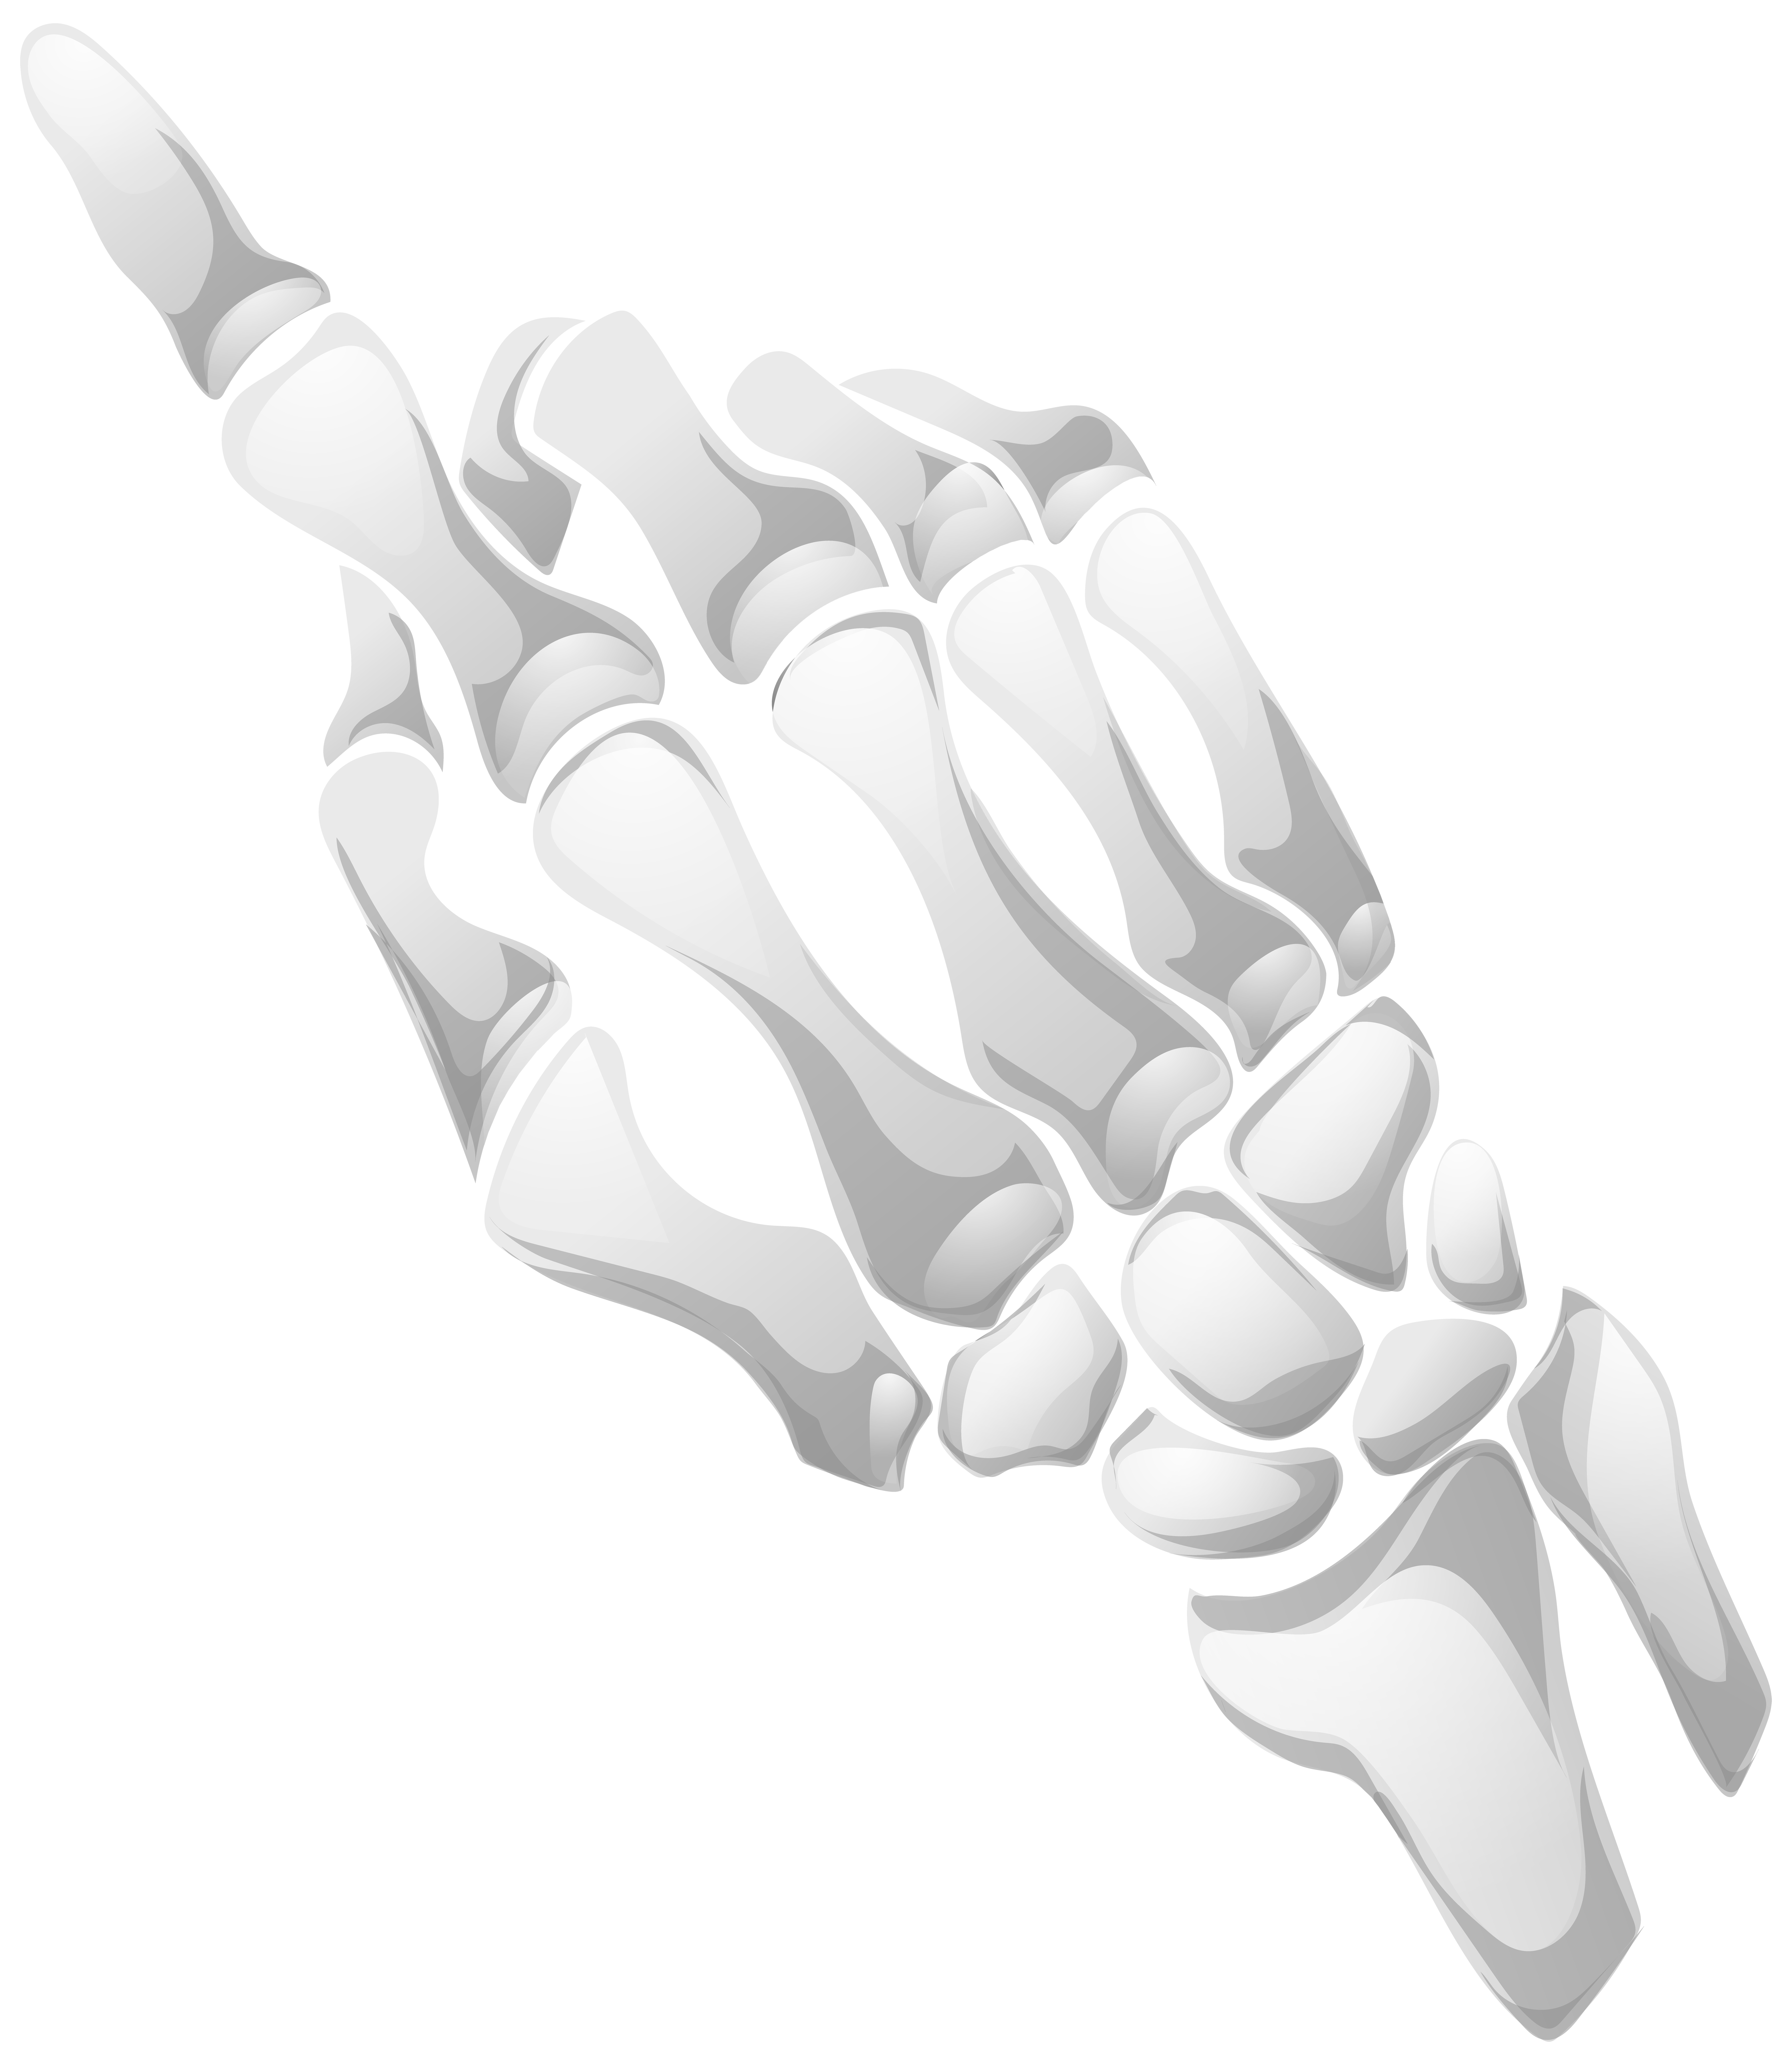 Hand png clip art. Clipart skeleton bow